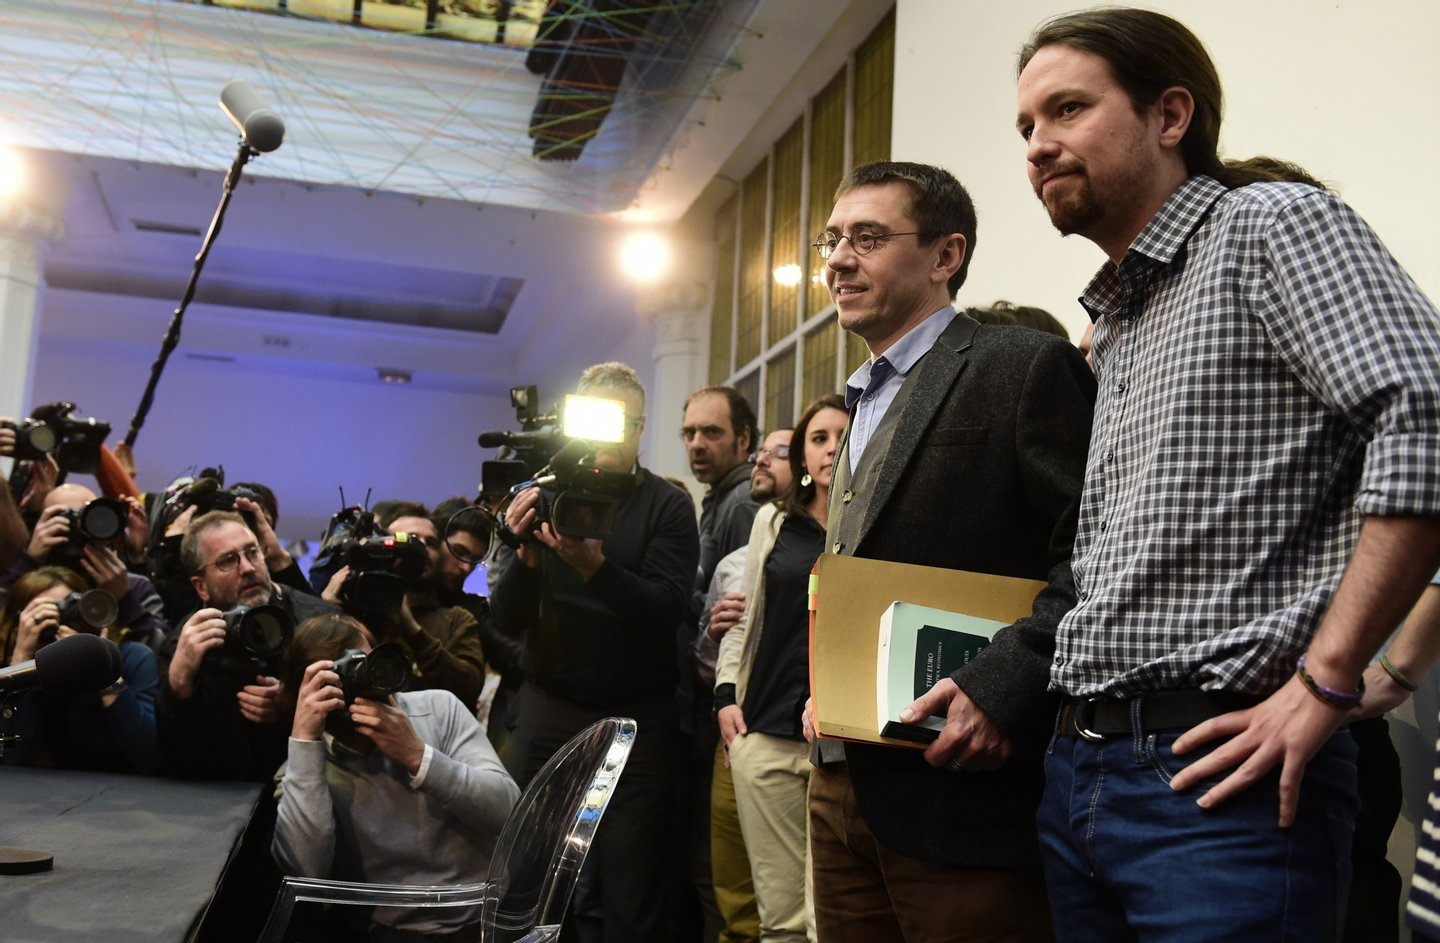 Spanish leader of Podemos Pablo Iglesias (R) and Spanish Secretary of Constituent Process and Programme of Podemos, Juan Carlos Monedero (2nd R), pose for photographers prior to giving a press conference in Madrid on February 20, 2015. Political science professor and founder of Podemos, Juan Carlos Monedero, finds himself embroiled in allegations of tax irregularities that forced him to publish his bank statements in an effort to silence critics.  AFP PHOTO / JAVIER SORIANO        (Photo credit should read JAVIER SORIANO/AFP/Getty Images)